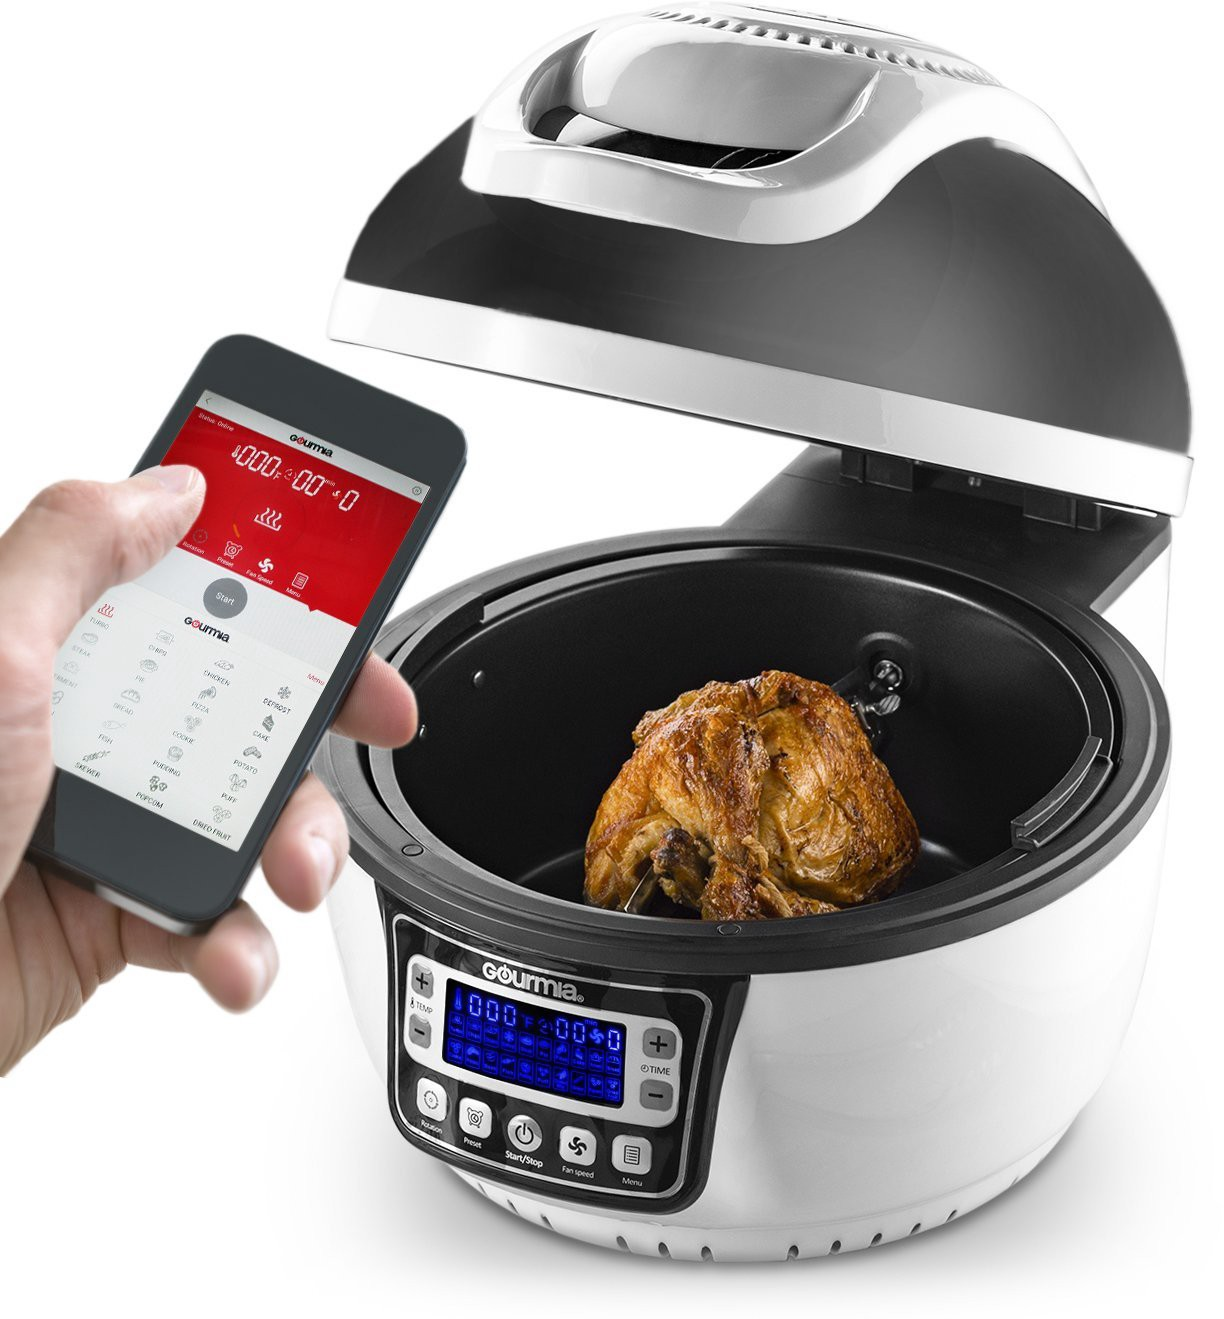 In 2017, Tech Is In Full Swing With All Sorts Of Kitchen Products To Help Make  Your Life Easier! Here Is A List Of Products To Use In Your Kitchen To Make  ...